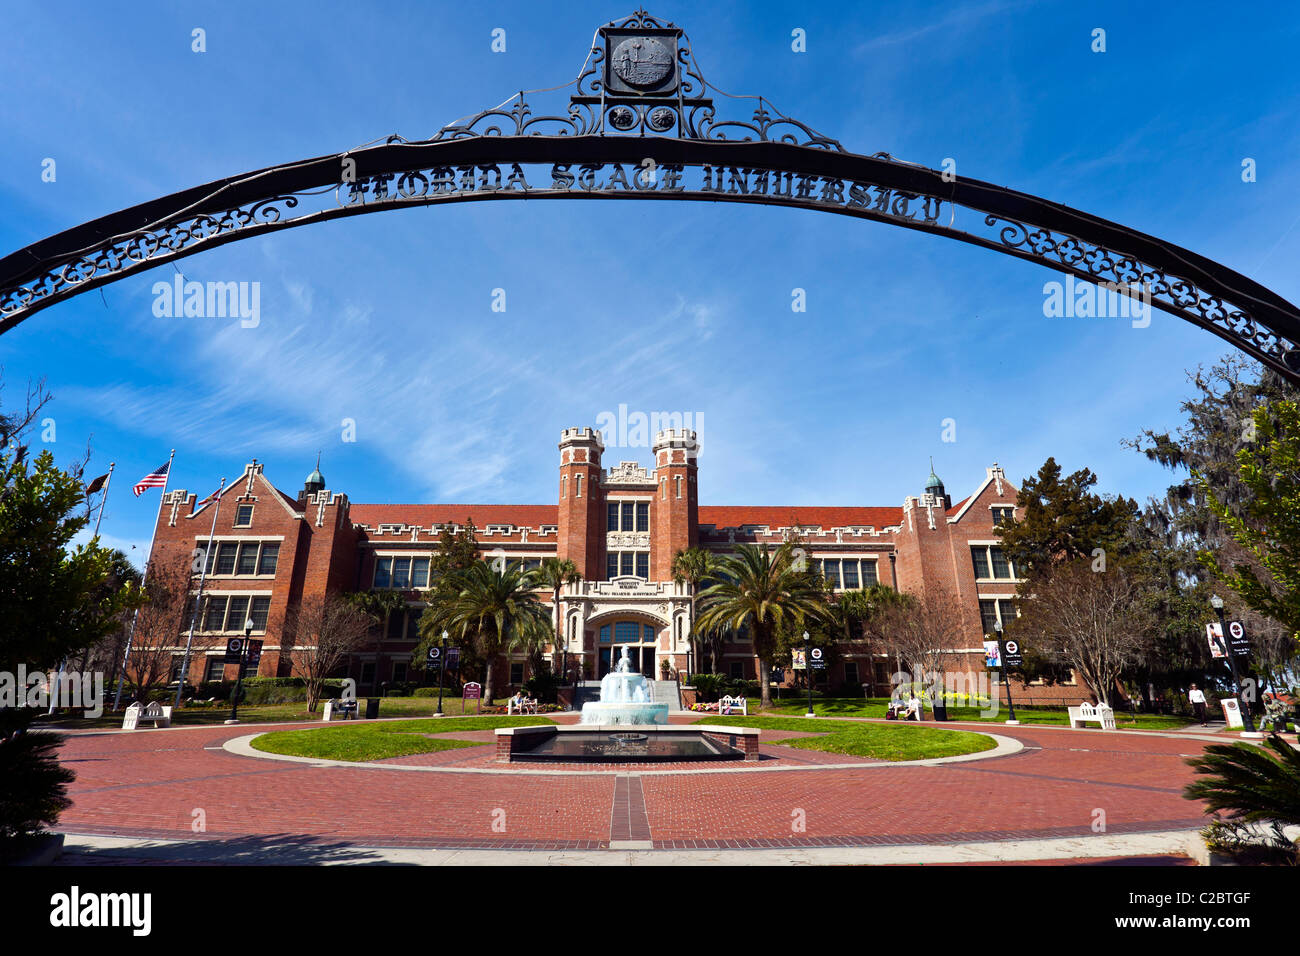 Looking through the entrance gates of the Florida State University in Tallahassee, Florida, United States - Stock Image